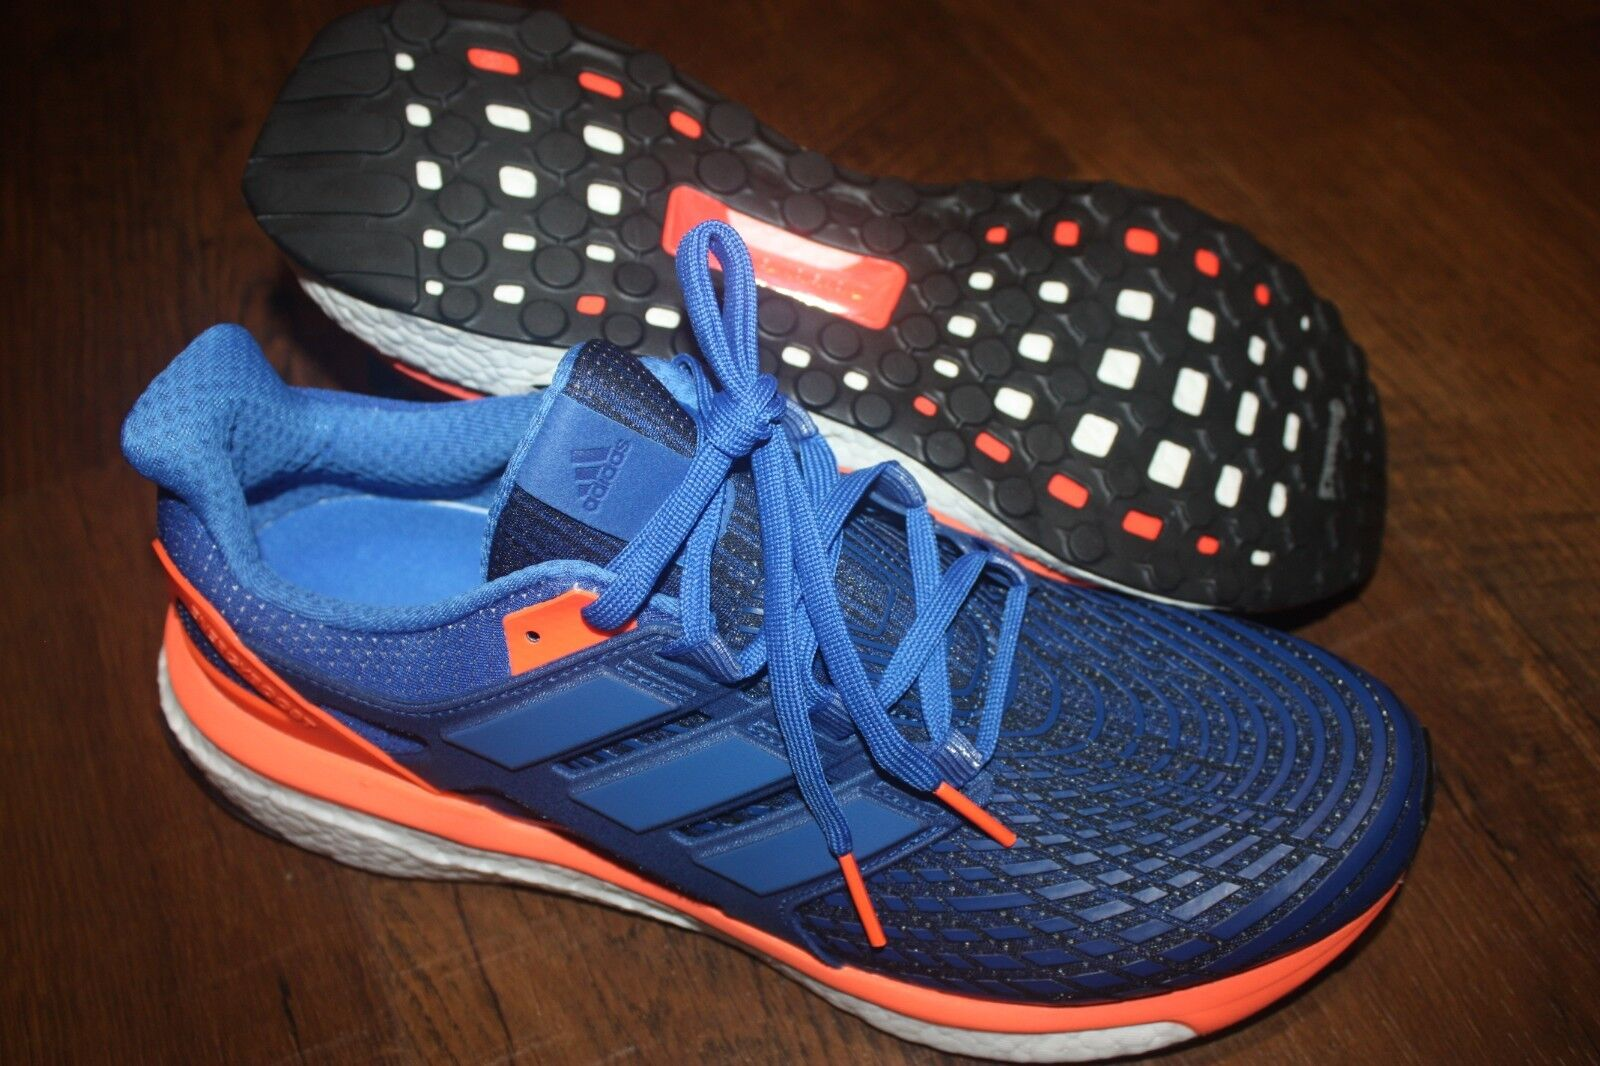 New In Box Men's Adidas Energy Boost Running Shoes Blue/Orange BB3453 SHIP FREE